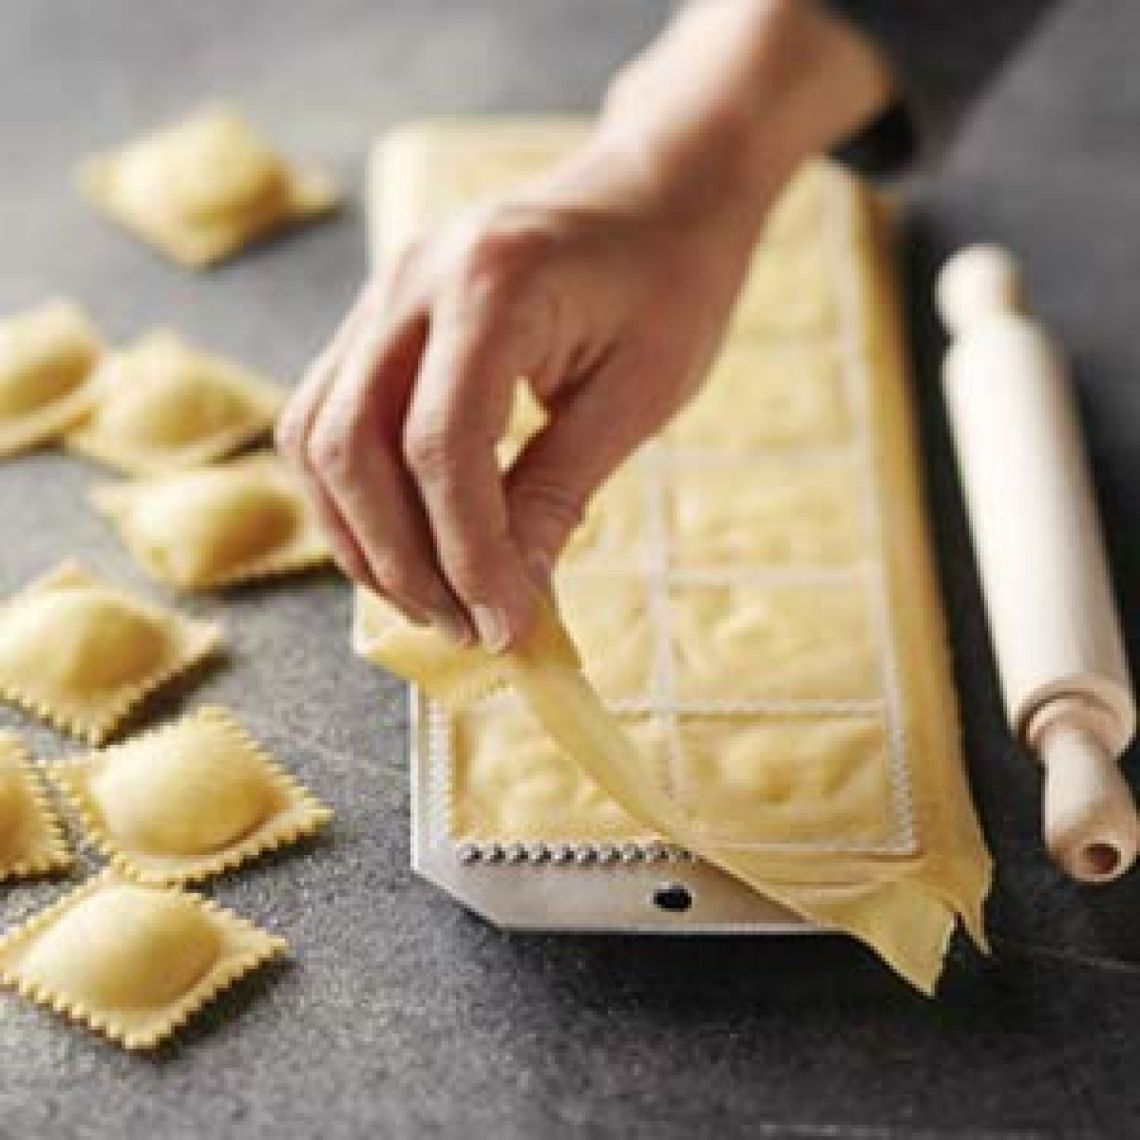 Amazon.com: Ravioli Maker - MASTER FENG Ravioli Maker Set of 4 with Rolling Pin Mold for Ravioli Meat Dumplings, Pelmeni maker (Hexagons): Kitchen & Dining